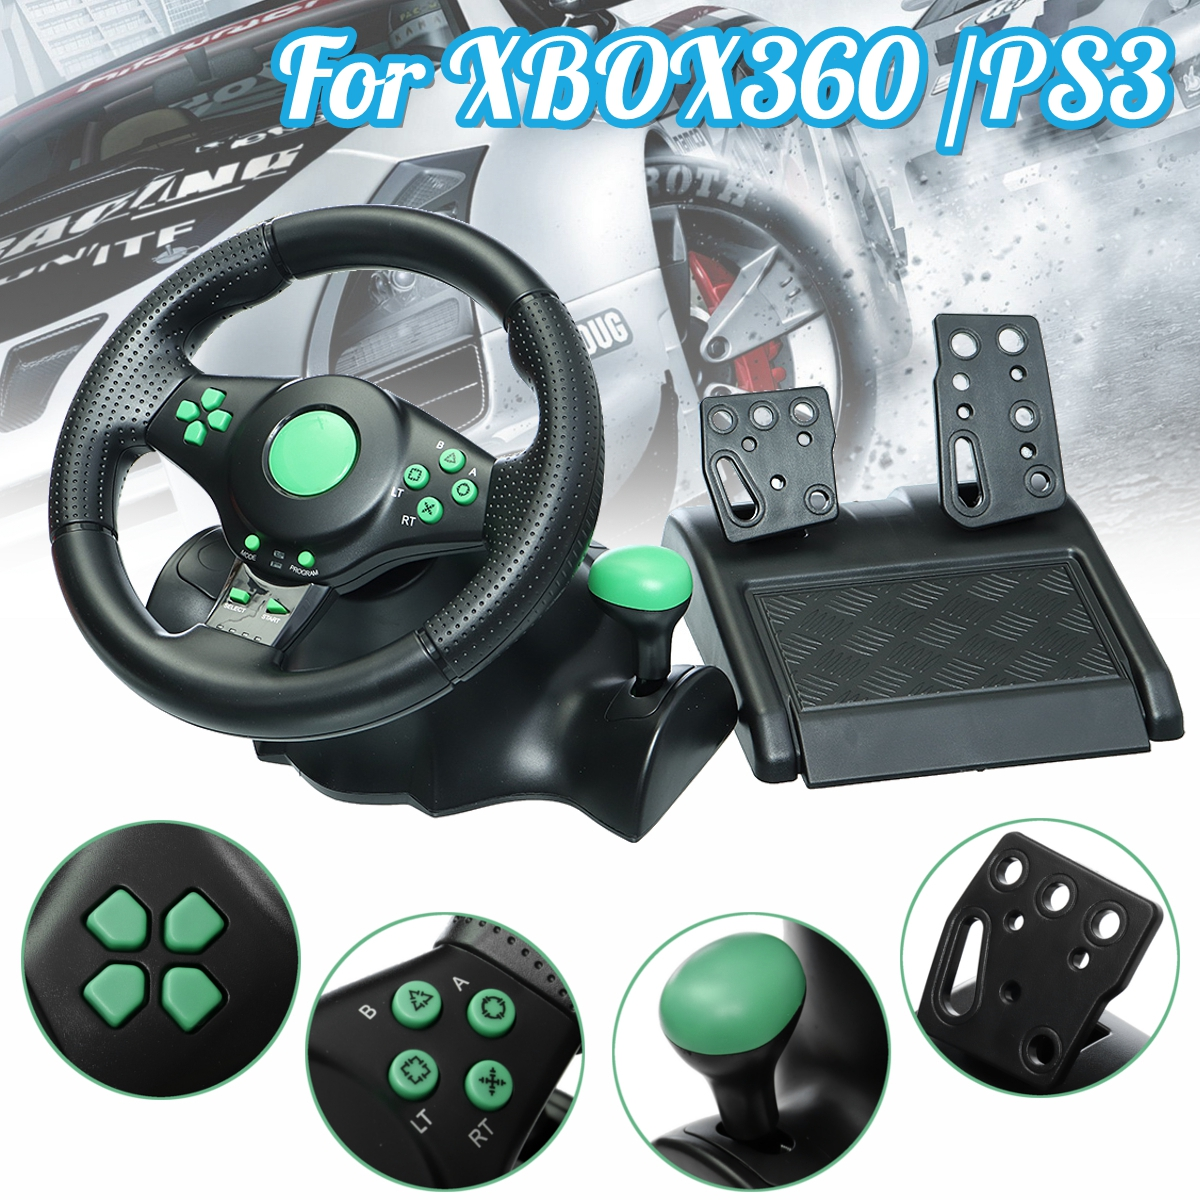 цена Feedback Racing Steering Wheel + Pedal Set Racing Gaming Driving PC for ps3